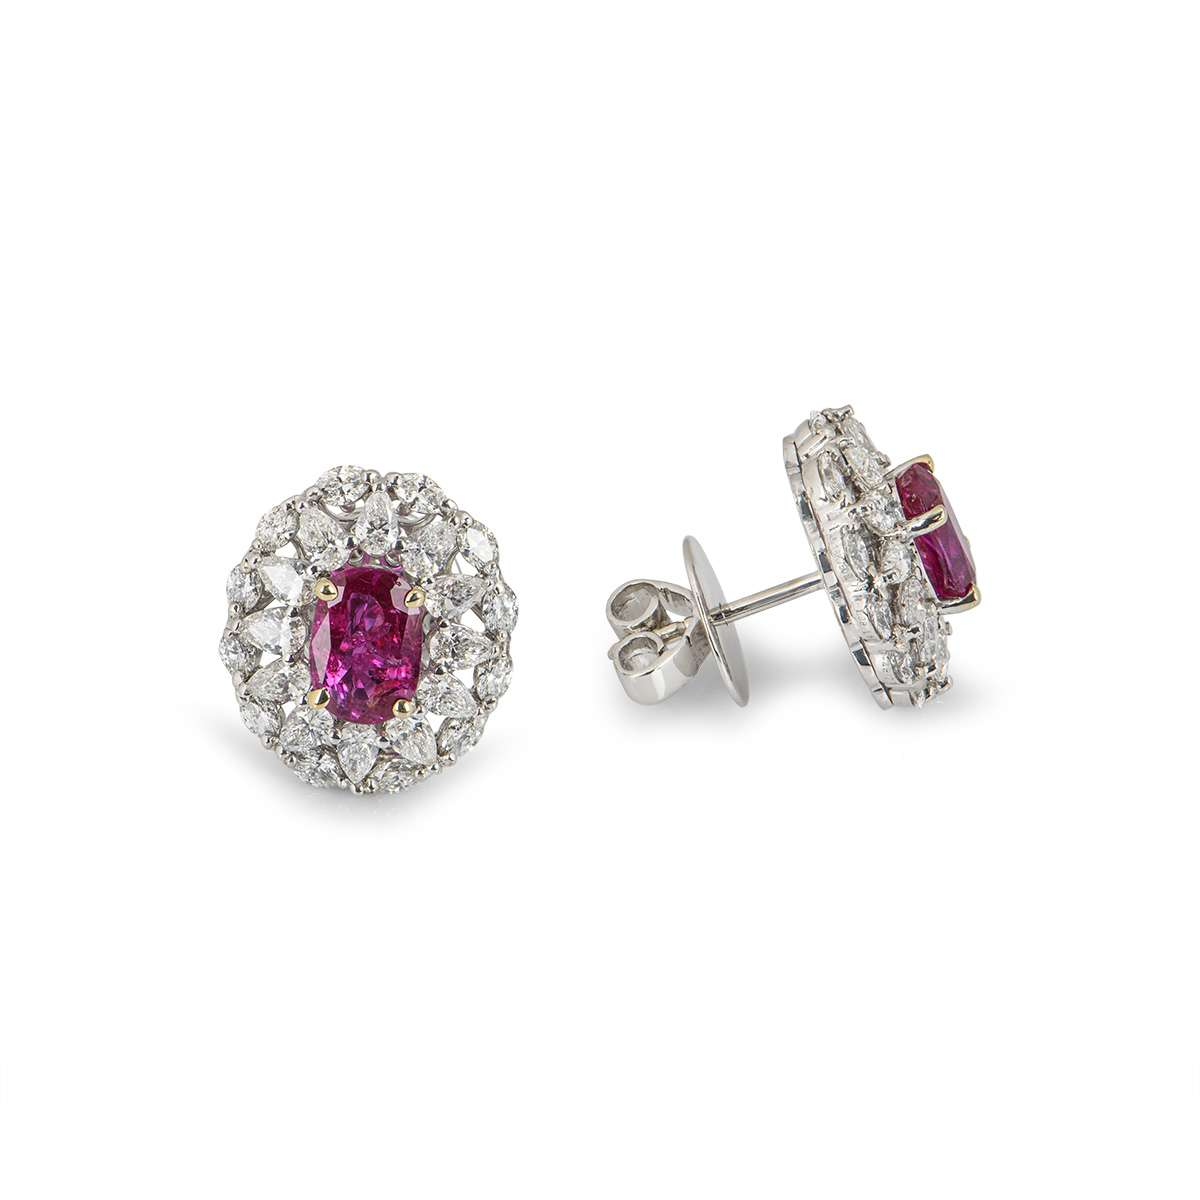 White Gold Natural Burmese Ruby and Diamond Earrings